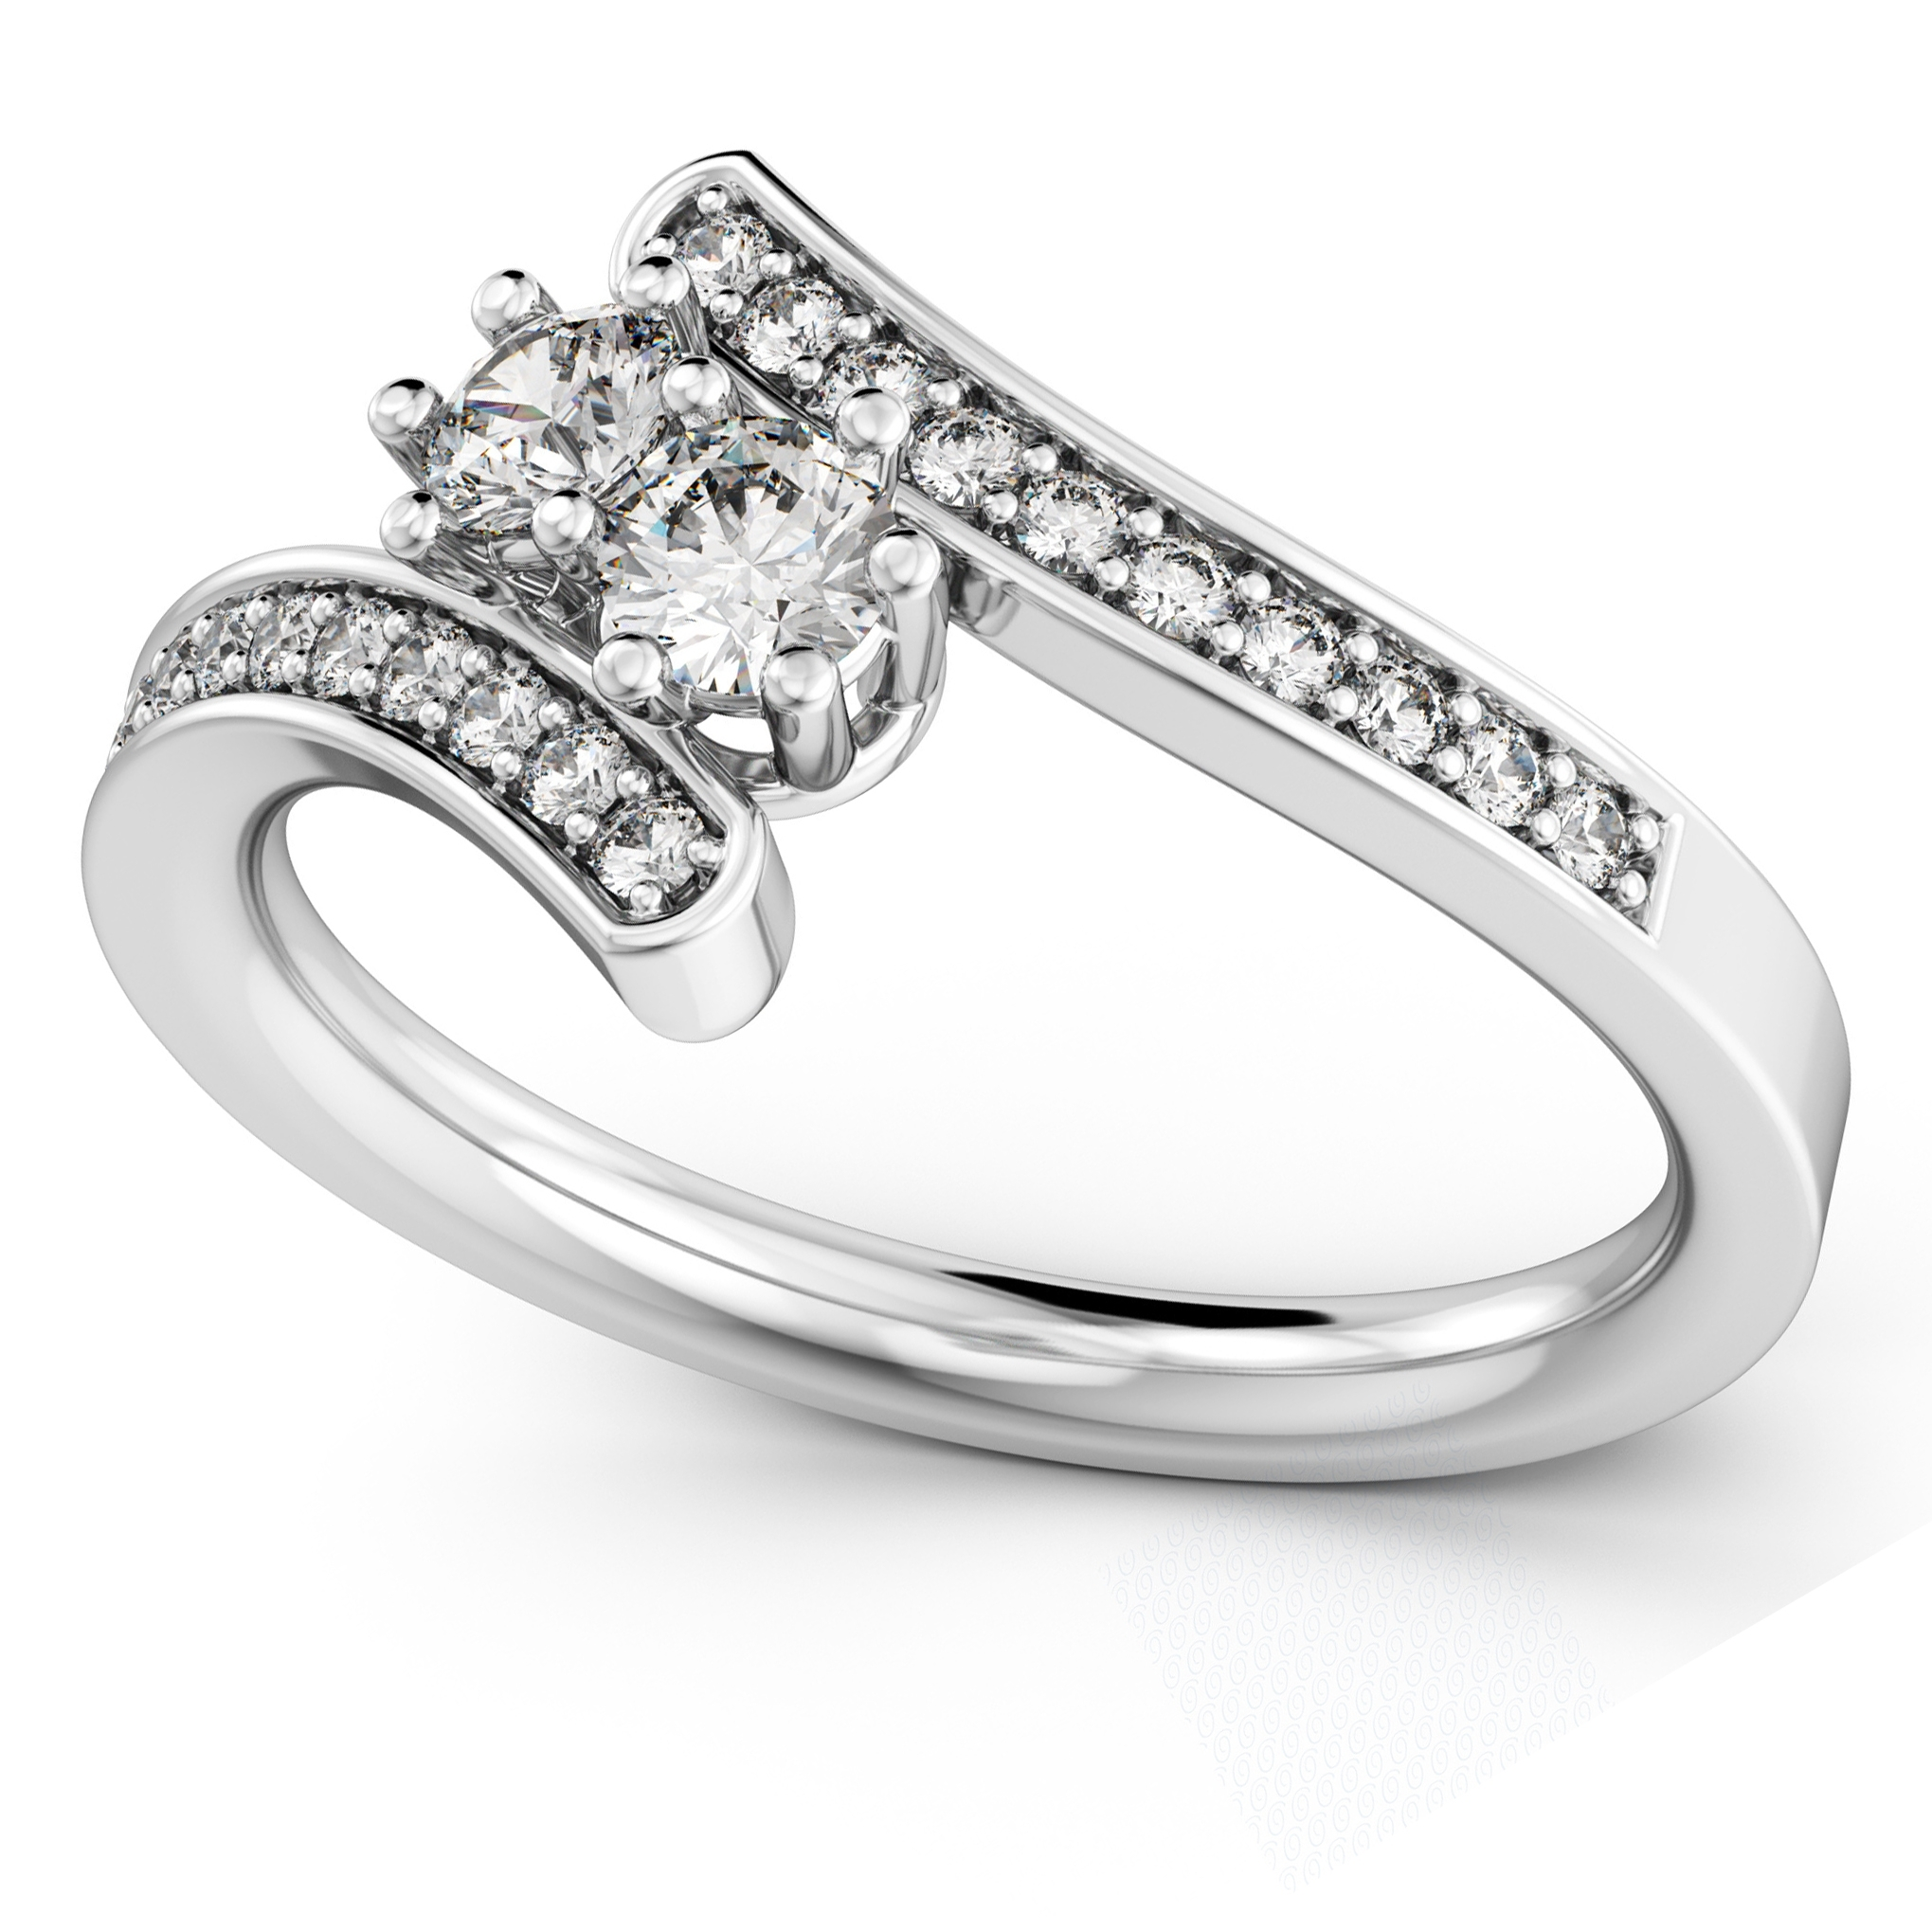 Diamond Accented Two Stone Curved Tension Ring 14K White Gold  (View 4 of 15)